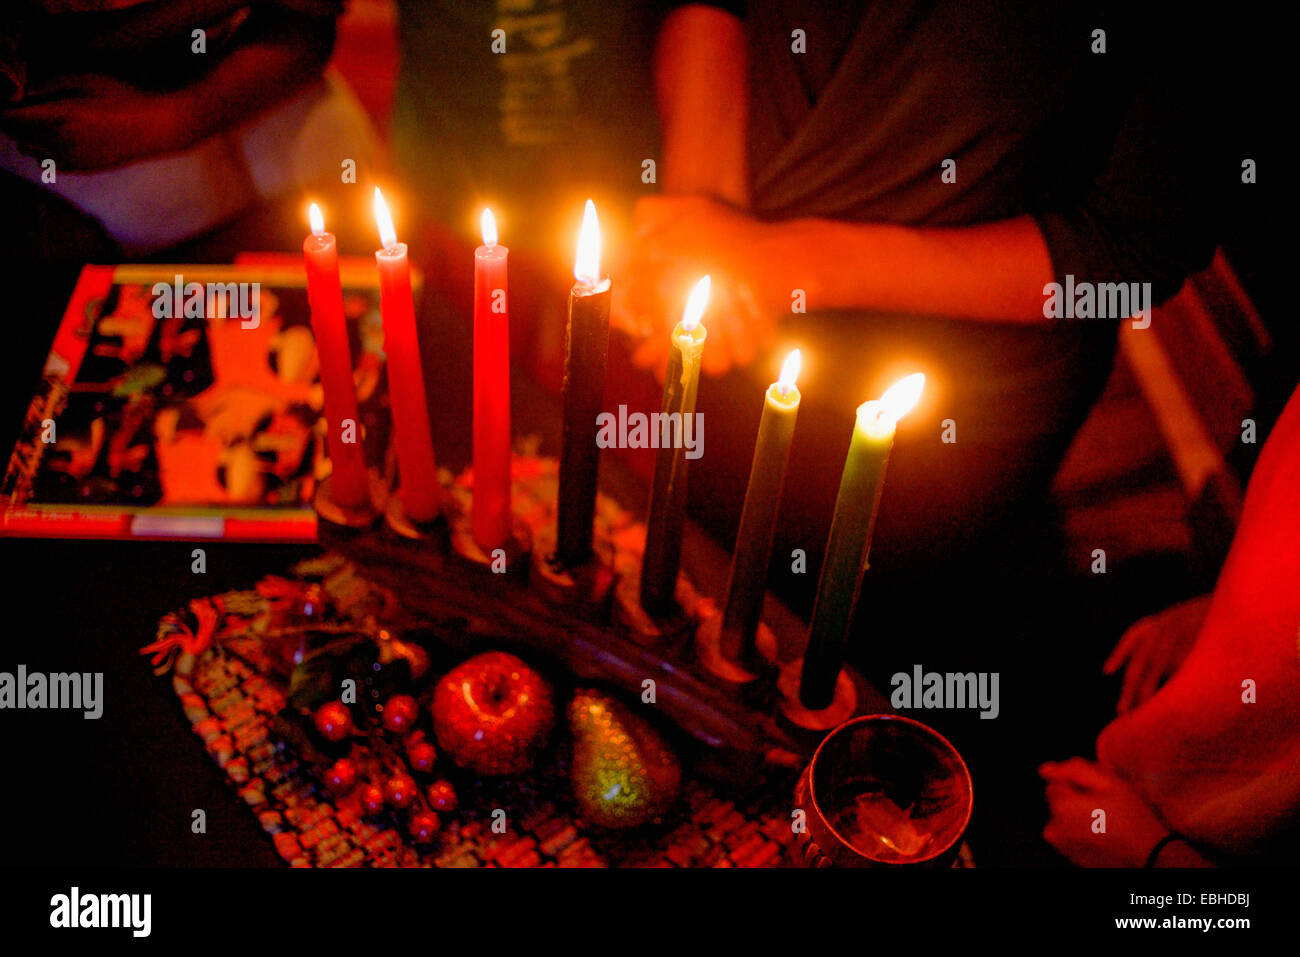 Family celebrating Kwanzaa, elevated view - Stock Image